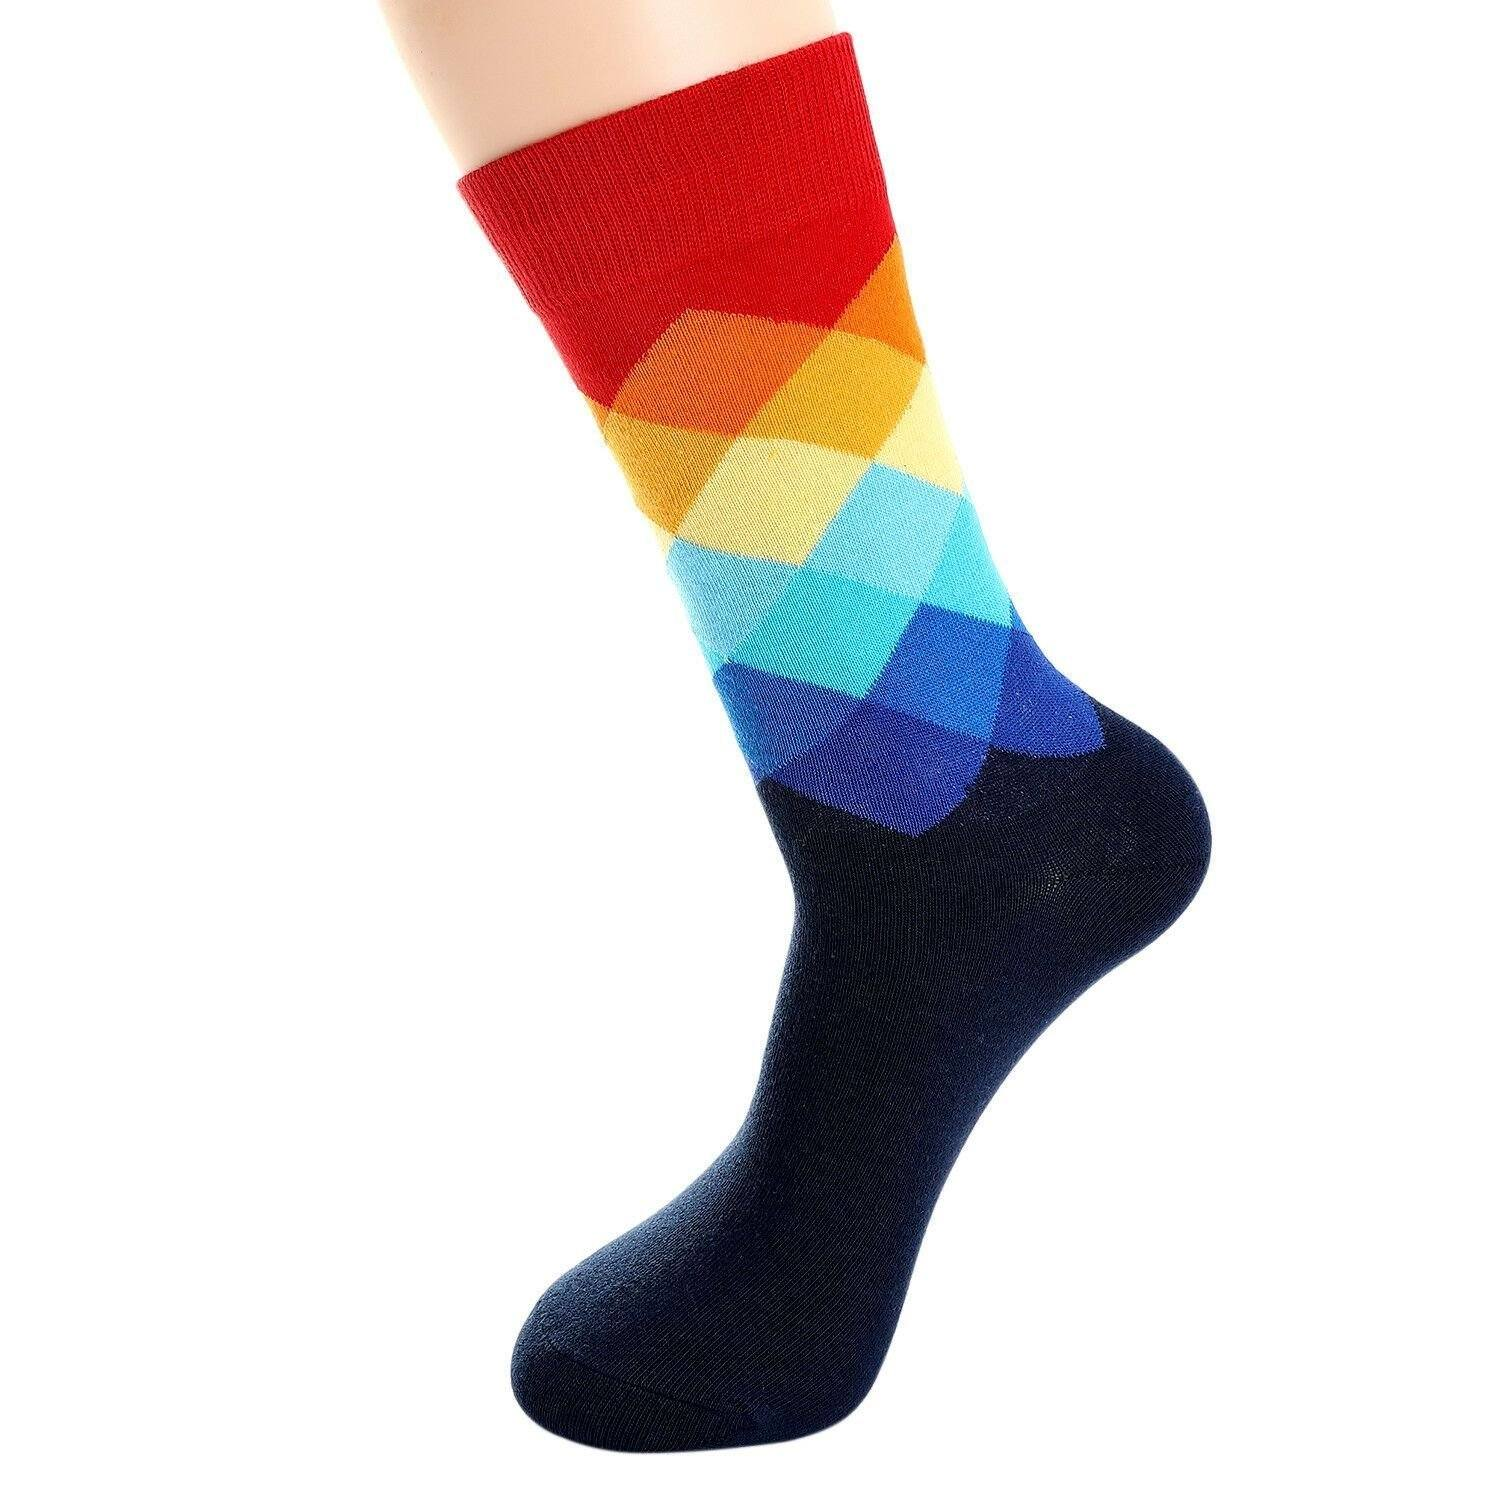 b9048362d3ec8 Click to enlarge. Home 6 Pairs Women's Argyle Pattern Socks Holiday Fashion  Multi ...